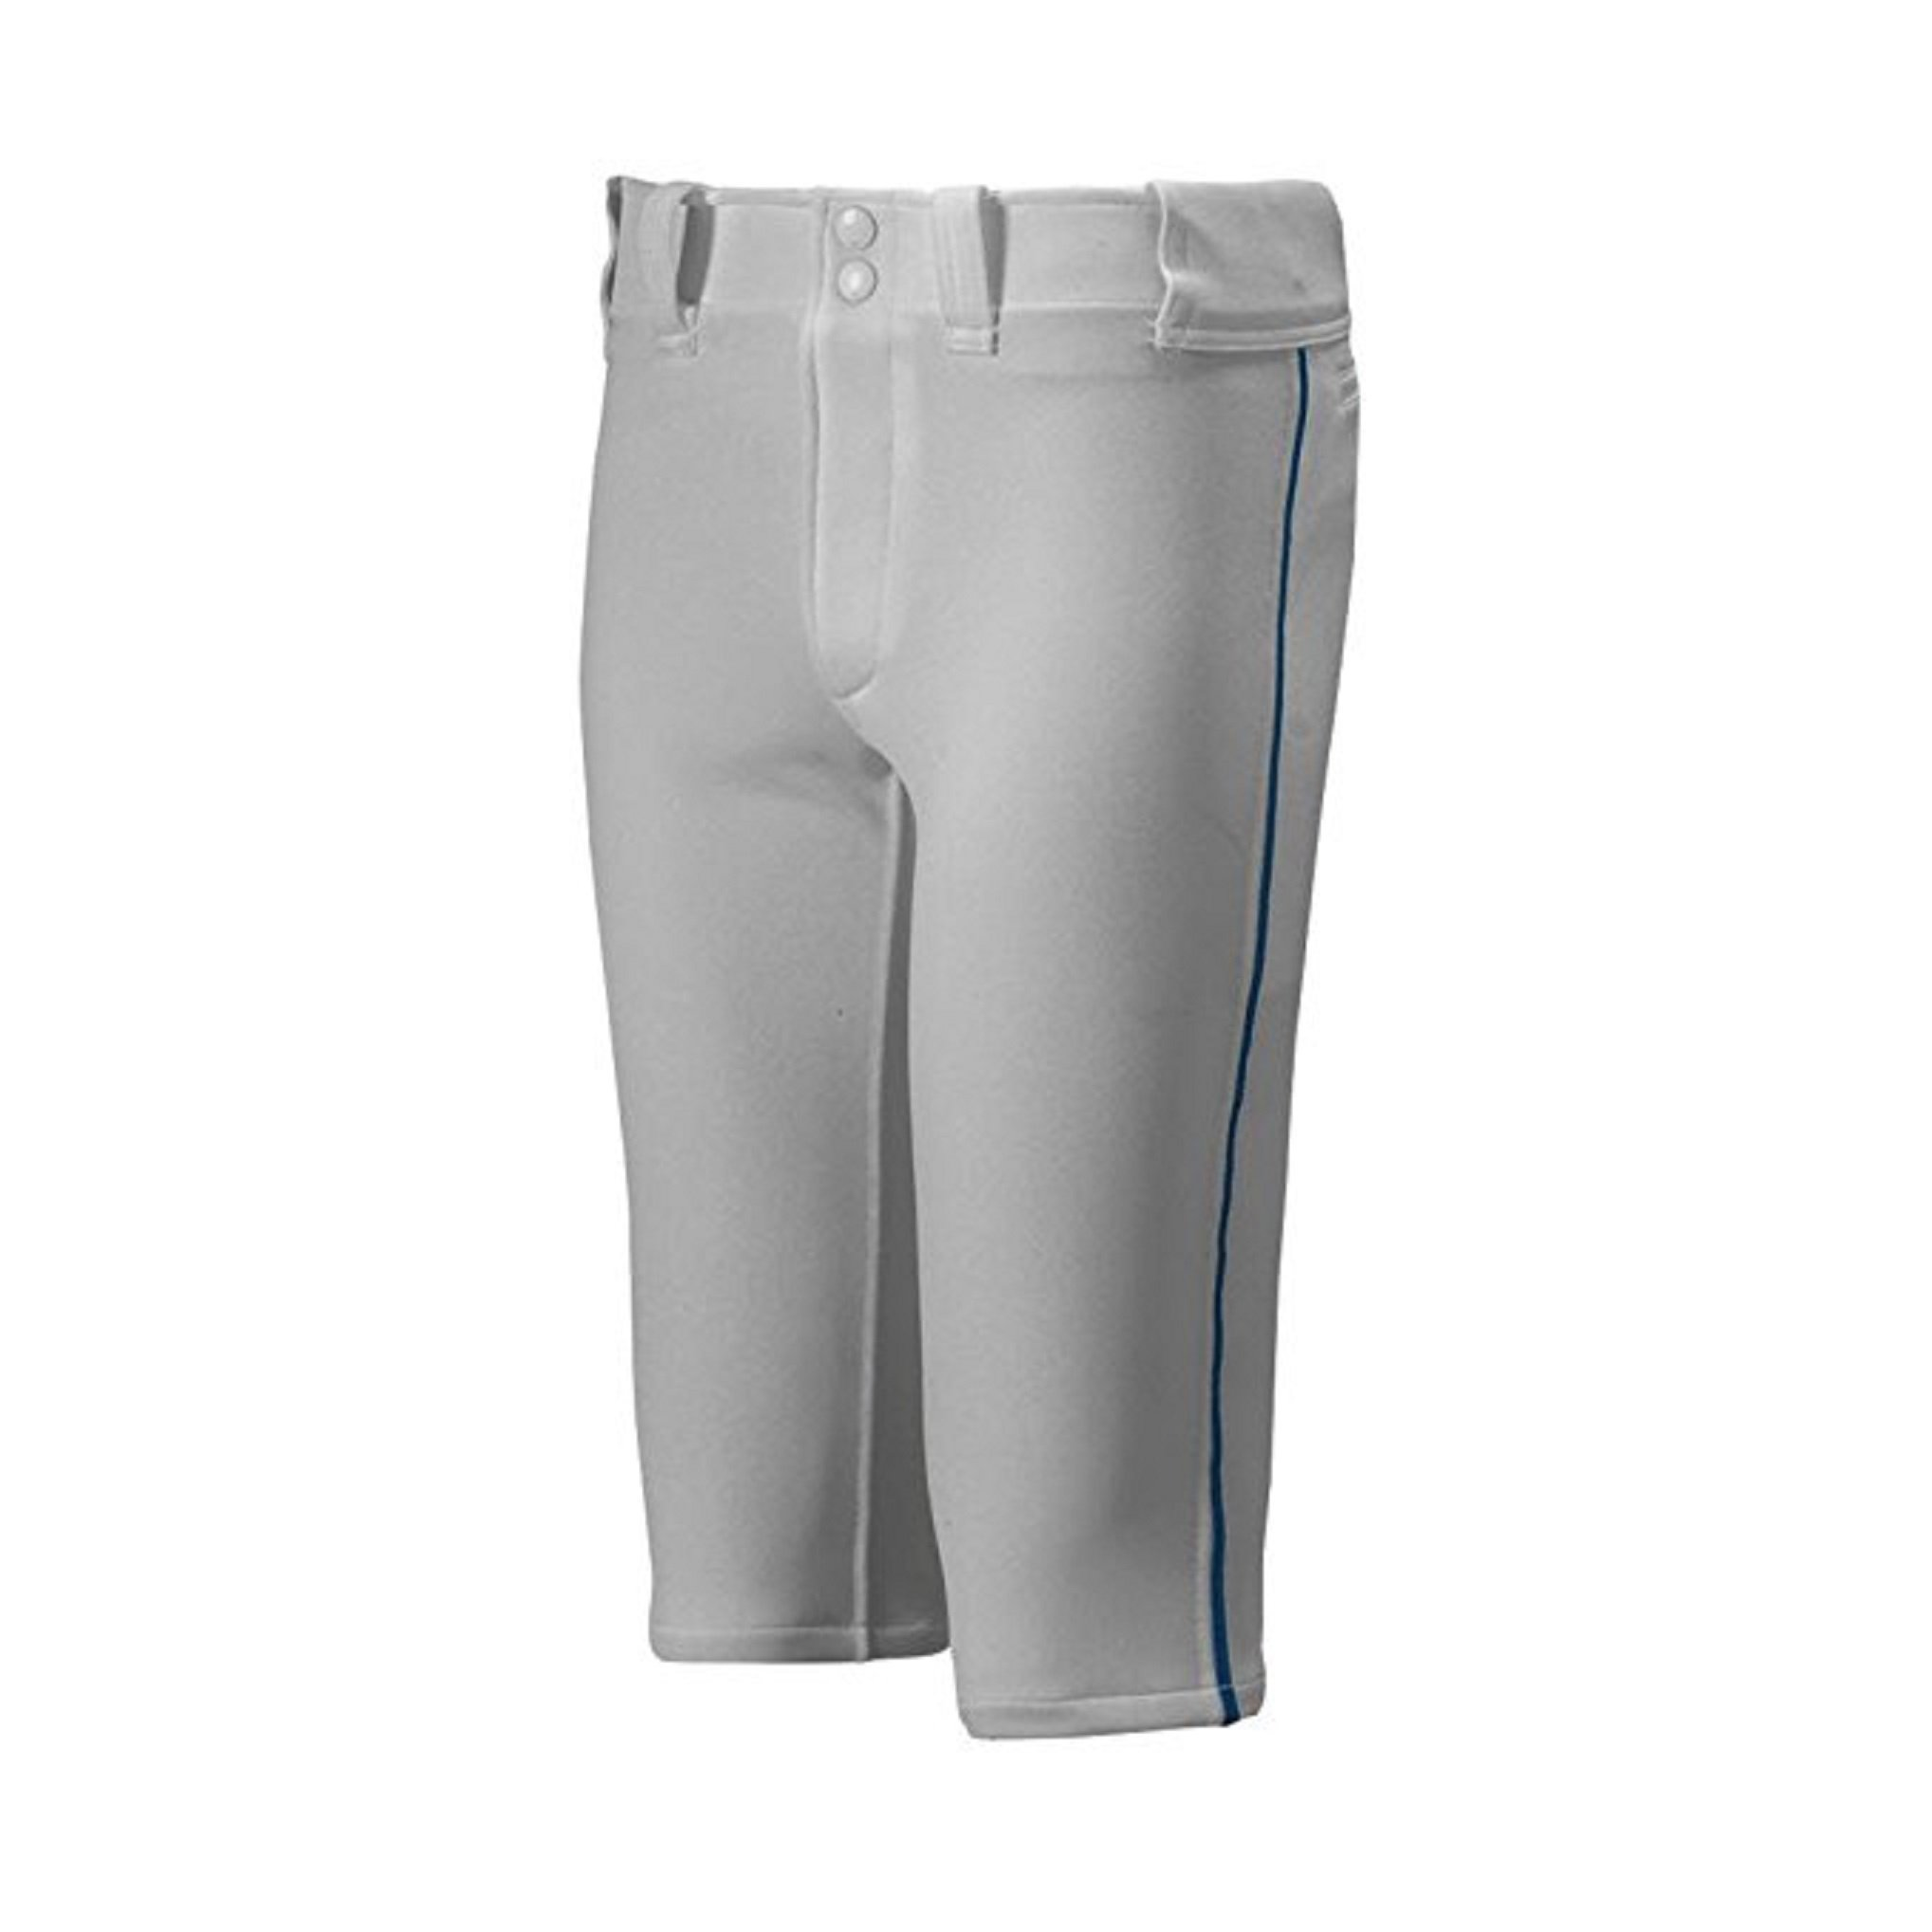 Mizuno Youth Premier Piped Short Baseball Pant, Grey-Navy, Youth Small by Mizuno